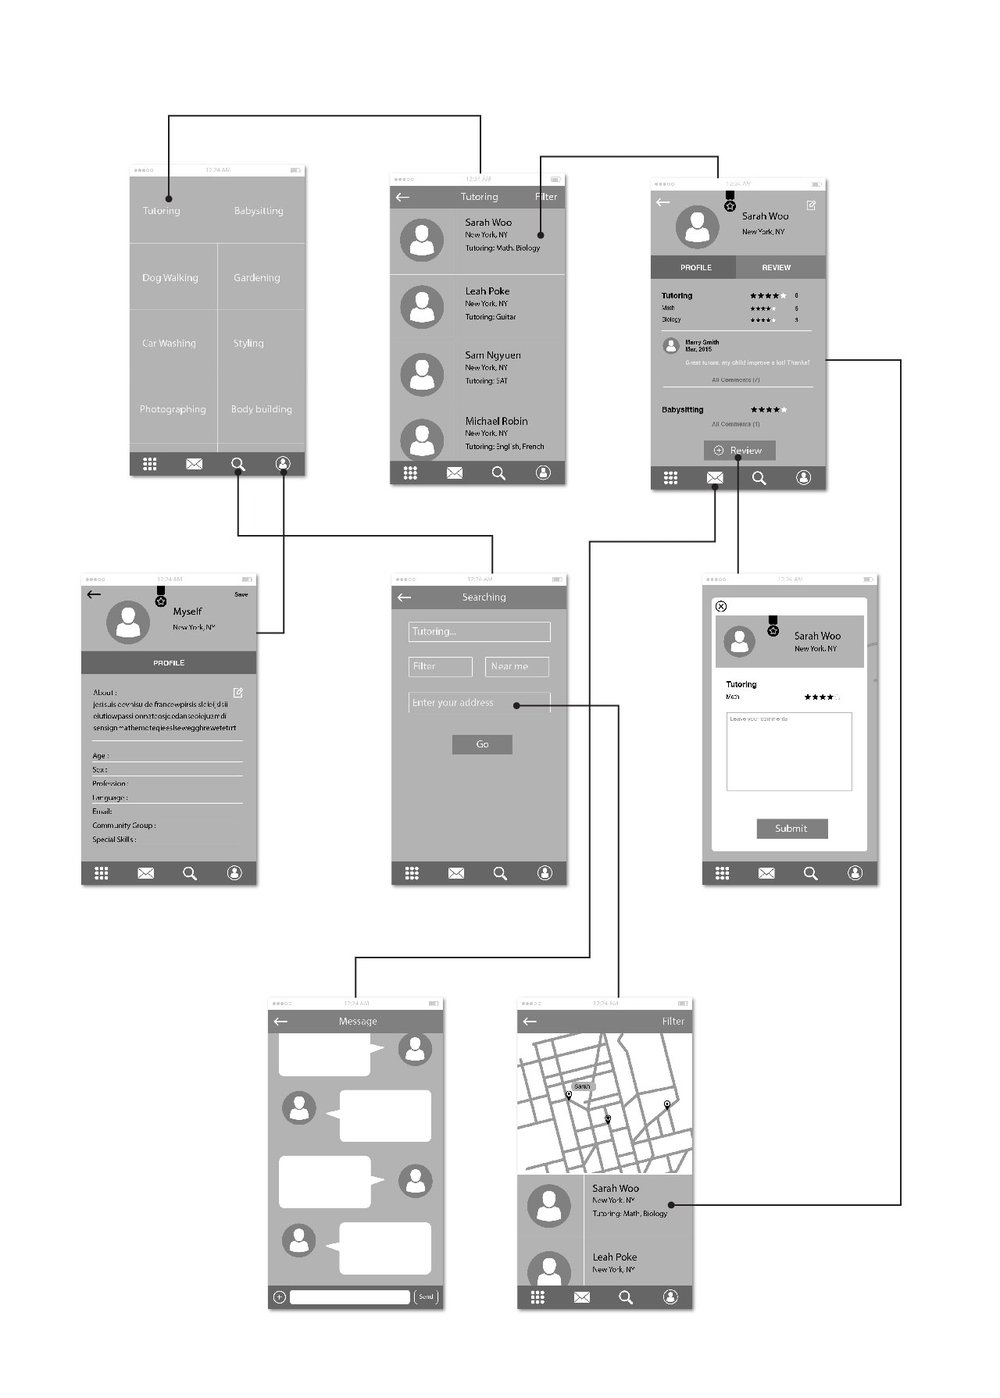 nearbies_wireframe